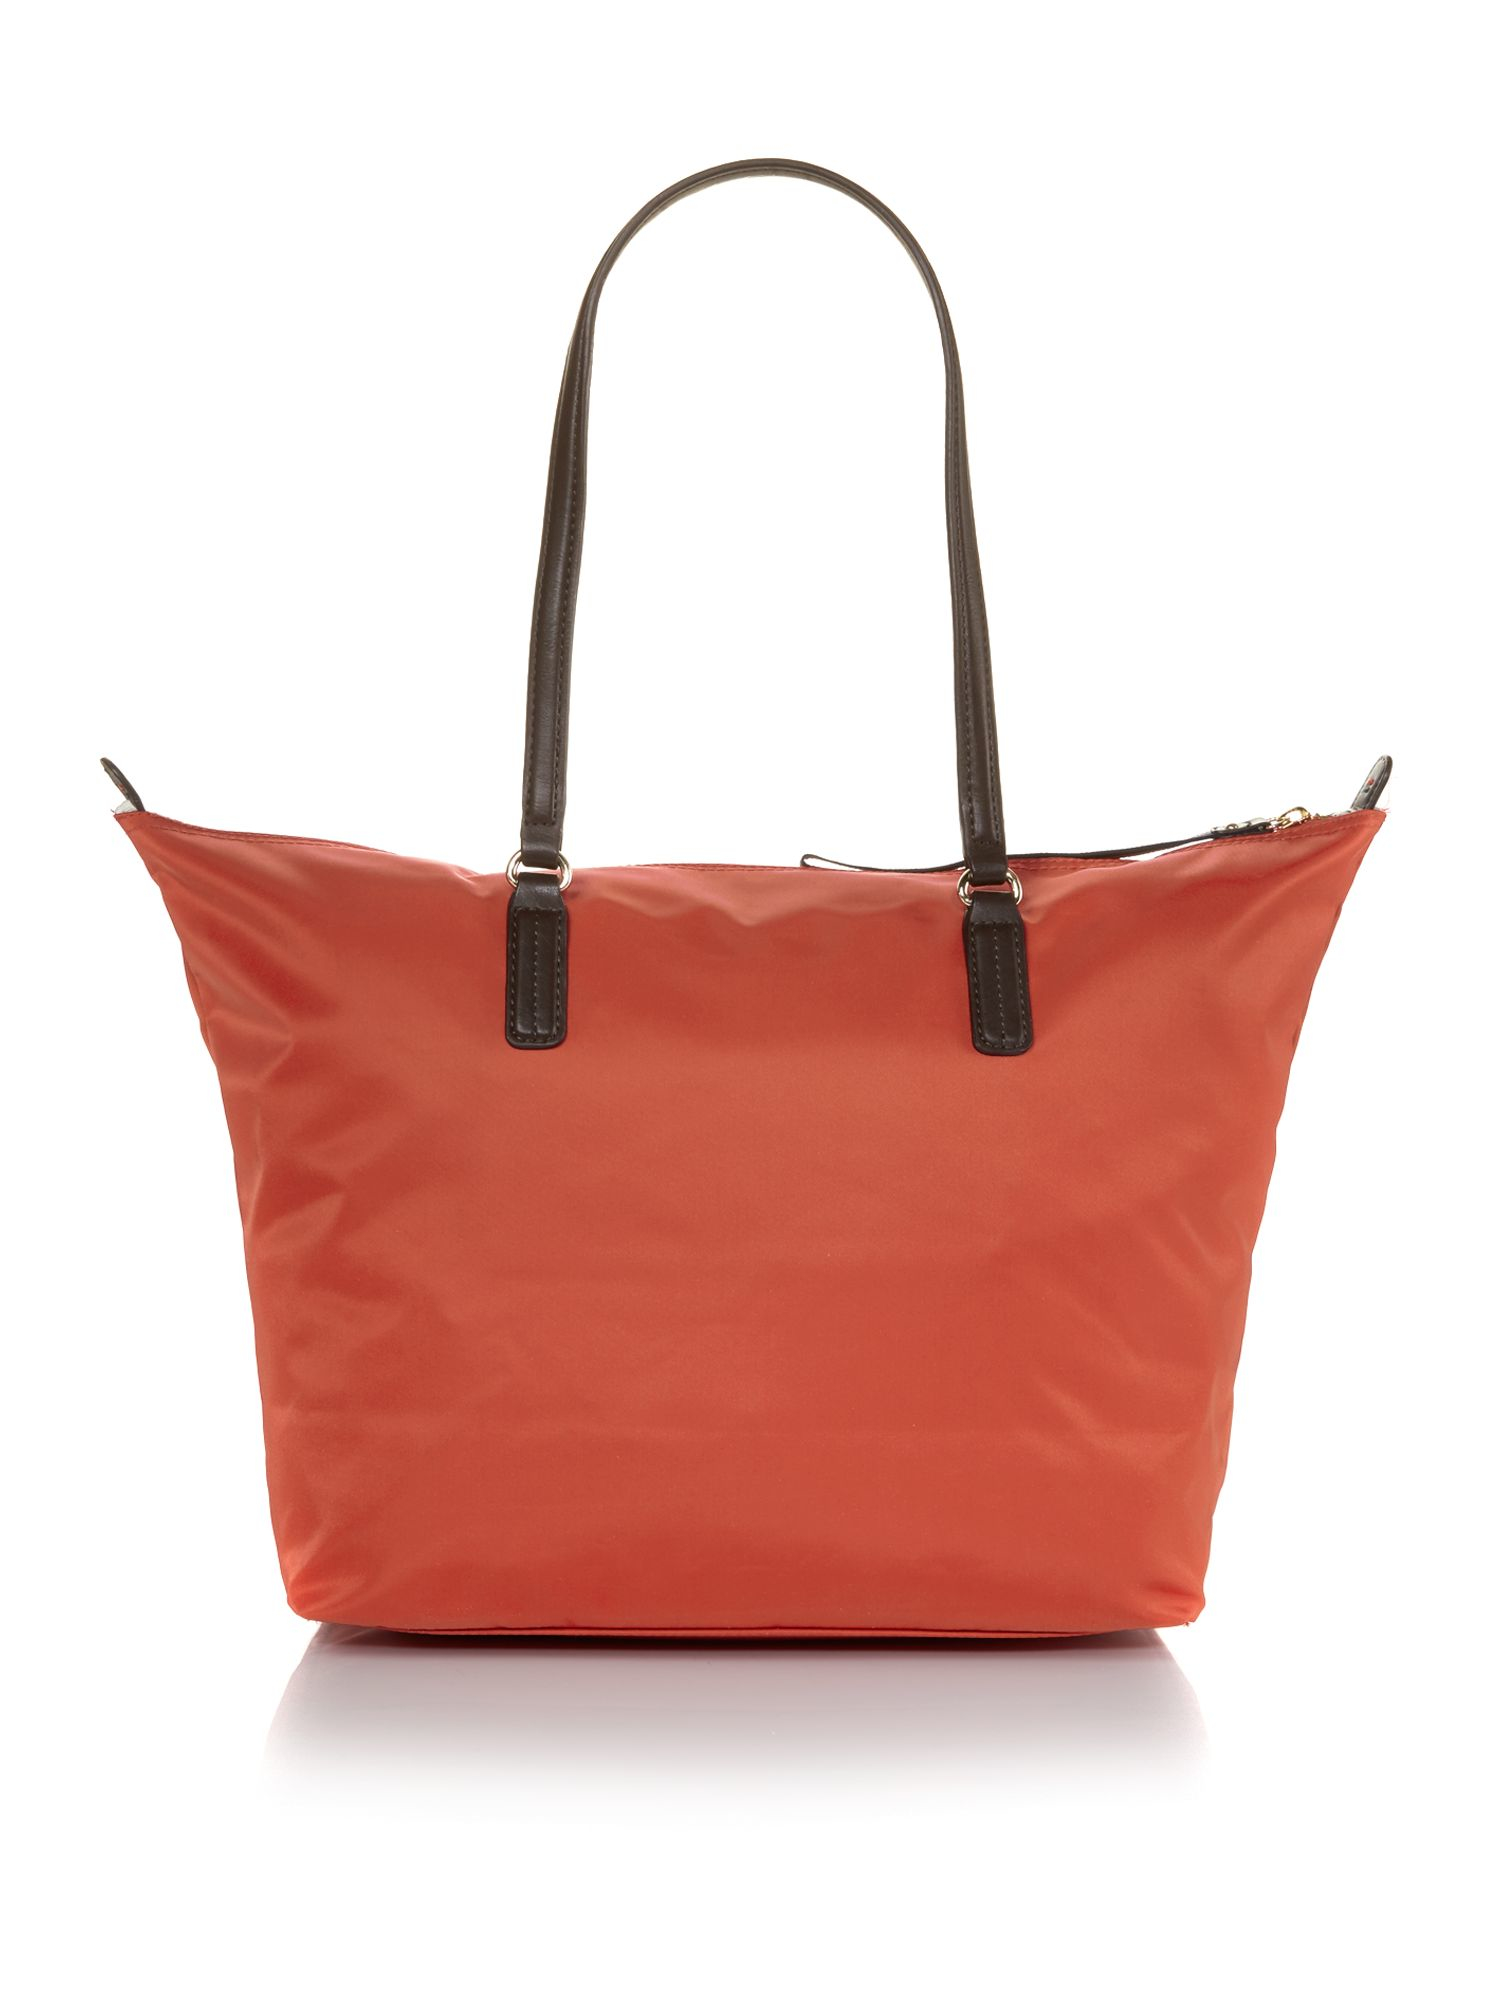 Tommy hilfiger Poppy Orange Tote Bag in Orange | Lyst